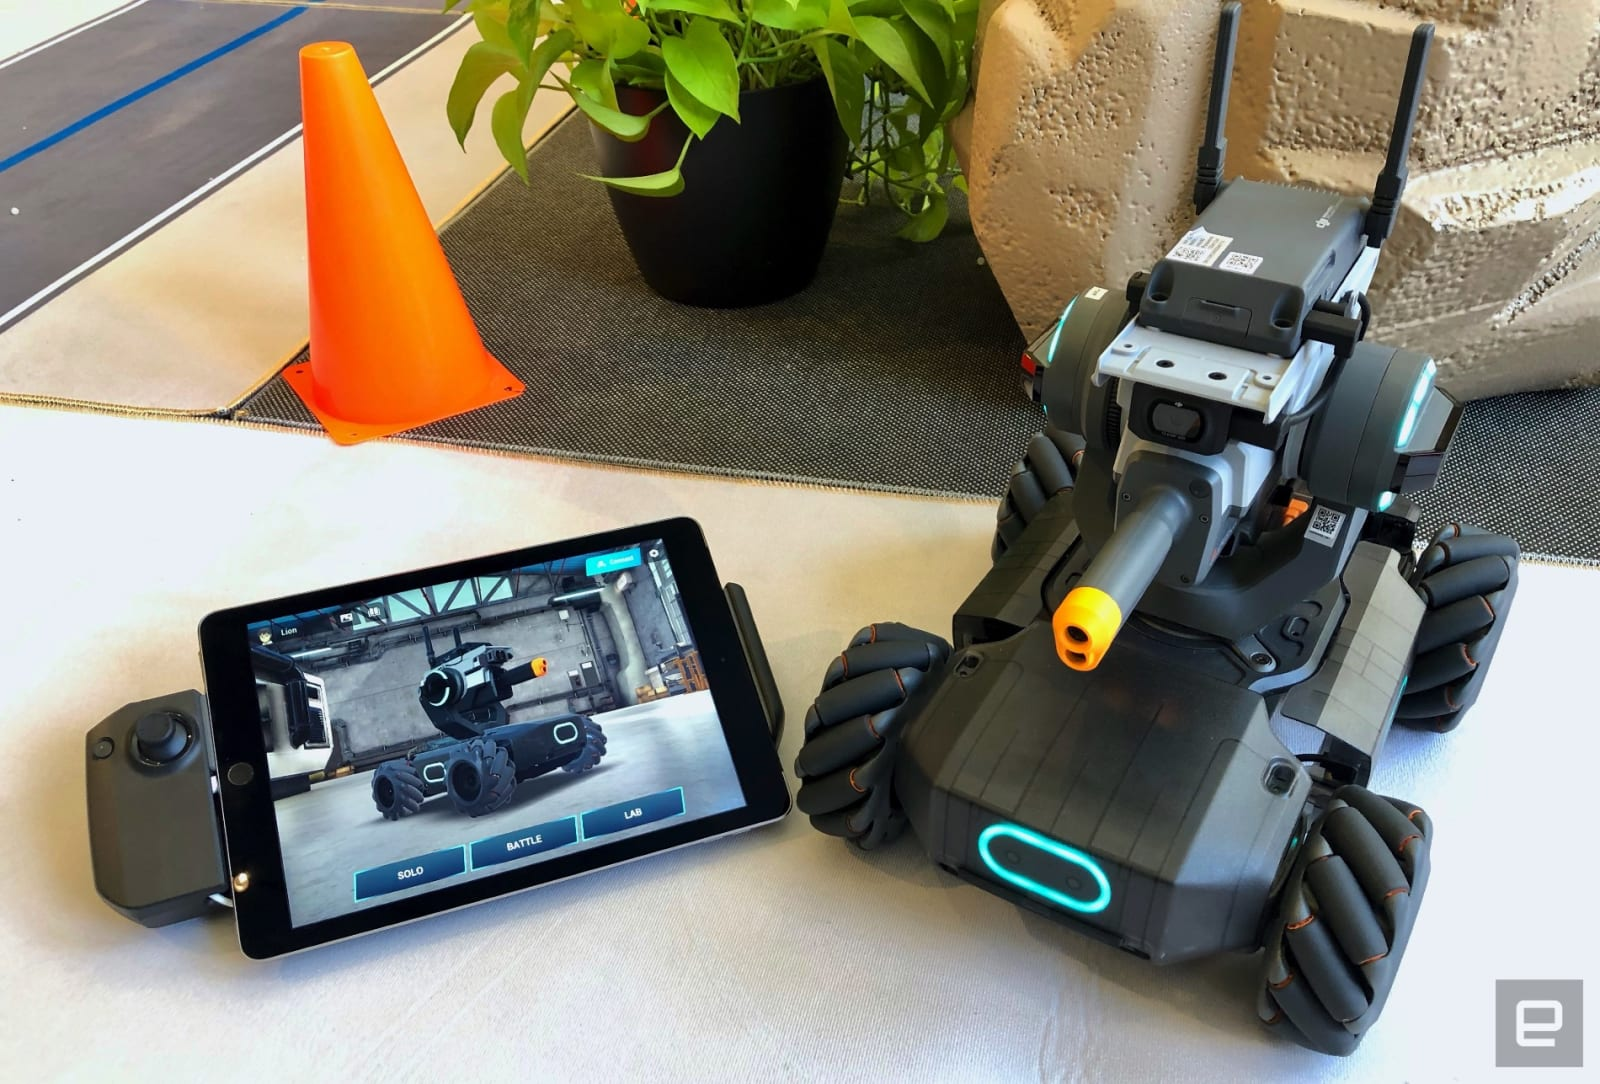 DJI's first educational robot is a $500 drone tank